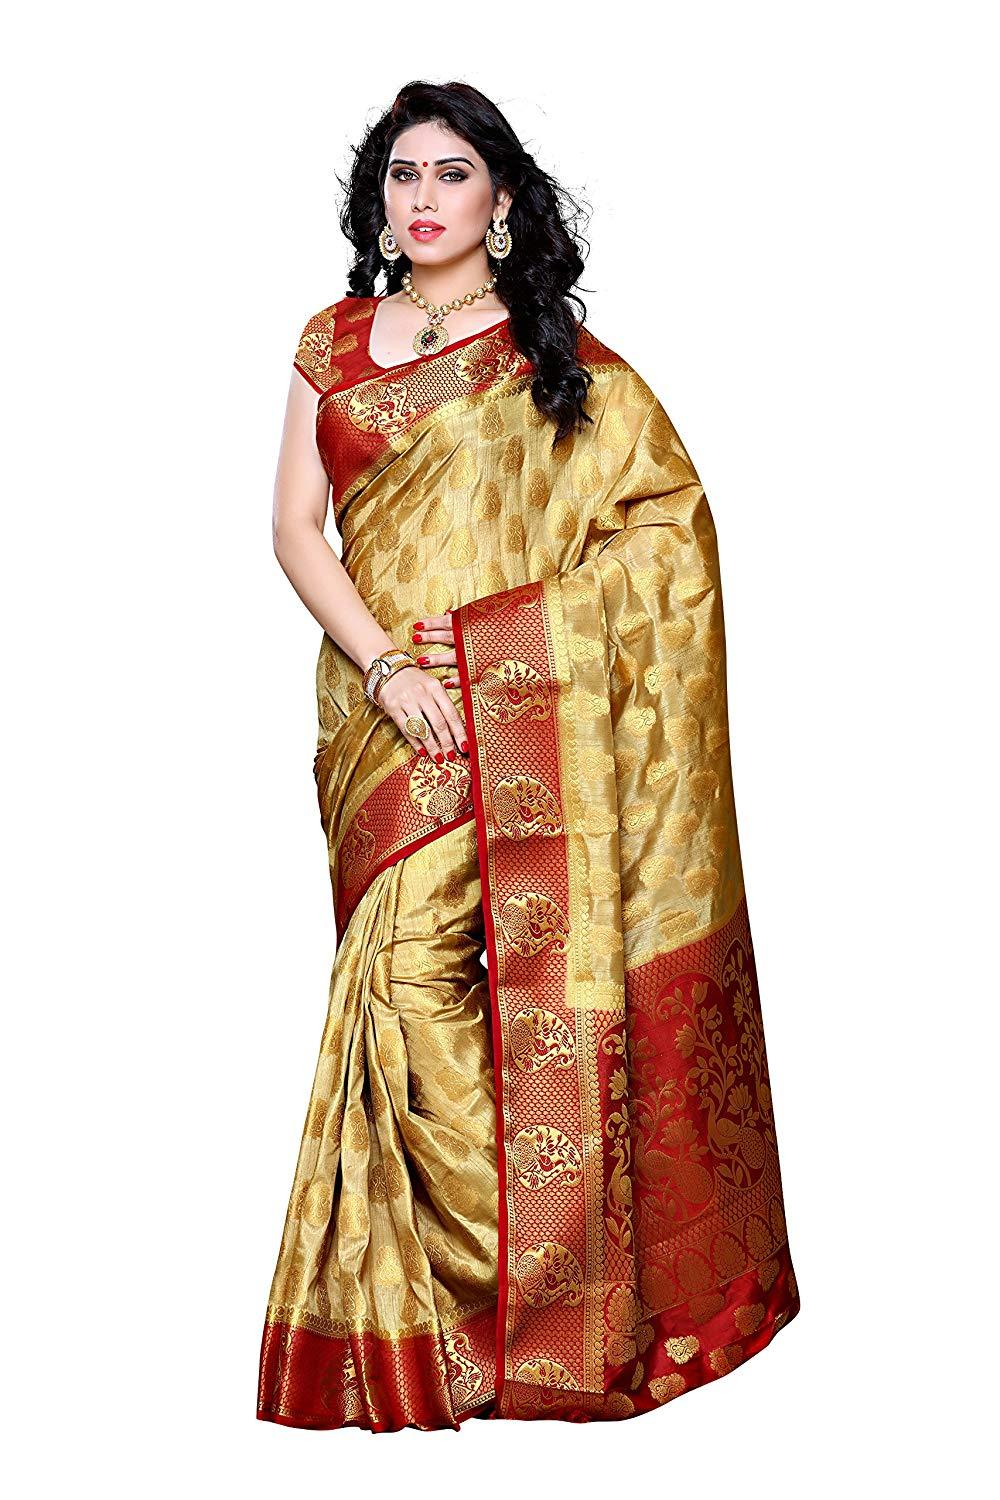 Flaray Women's Traditional Art Silk Saree Kanjivaram Style With Blouse Color